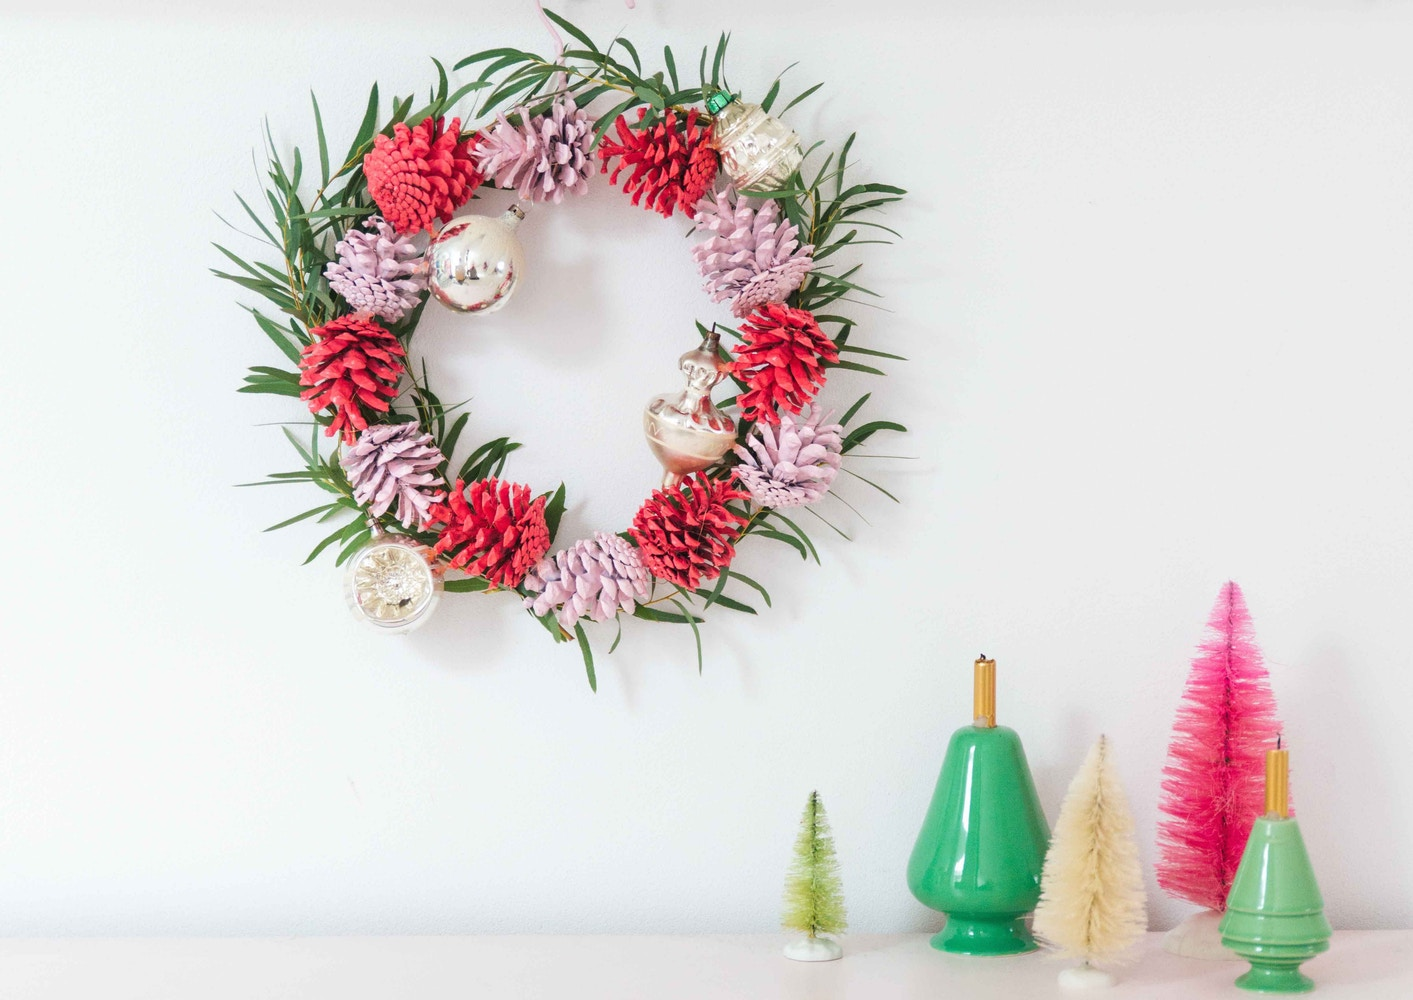 DIY PINECONE CHRISTMAS WREATH